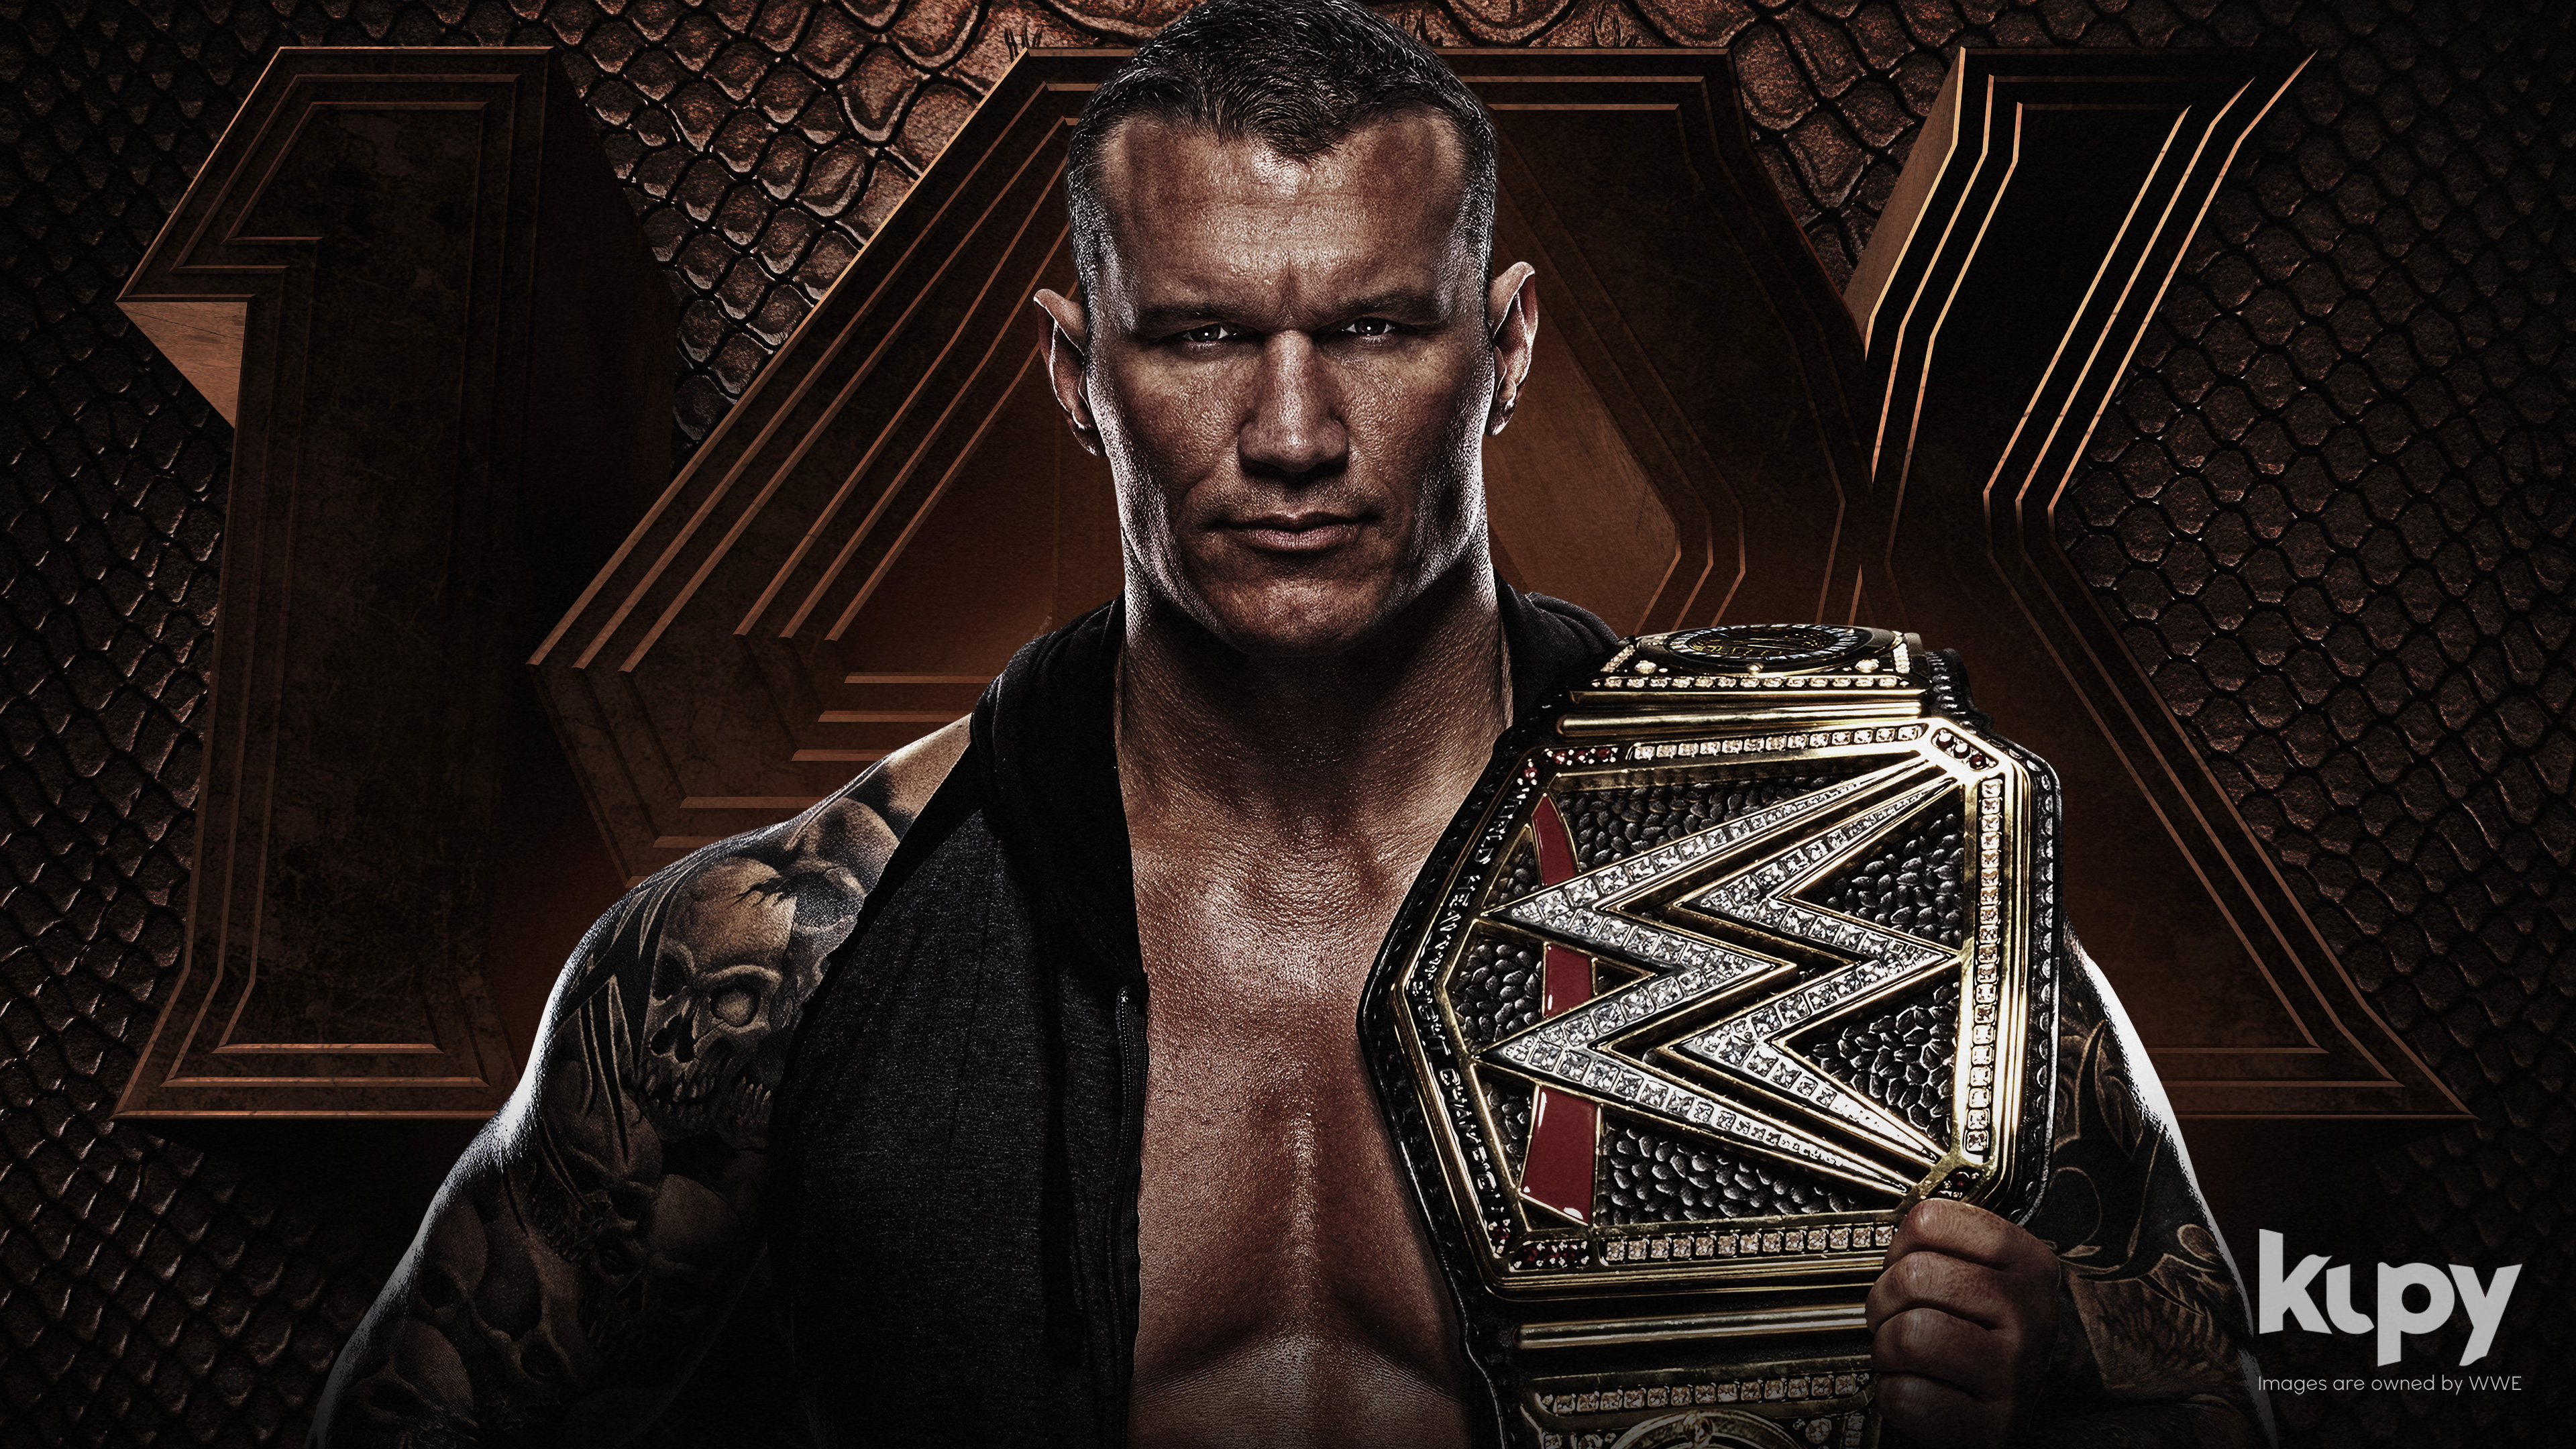 Kupy Wrestling Wallpapers The Latest Source For Your Wwe Wrestling Wallpaper Needs Mobile Hd And 4k Resolutions Available Randy Orton Archives Kupy Wrestling Wallpapers The Latest Source For Your